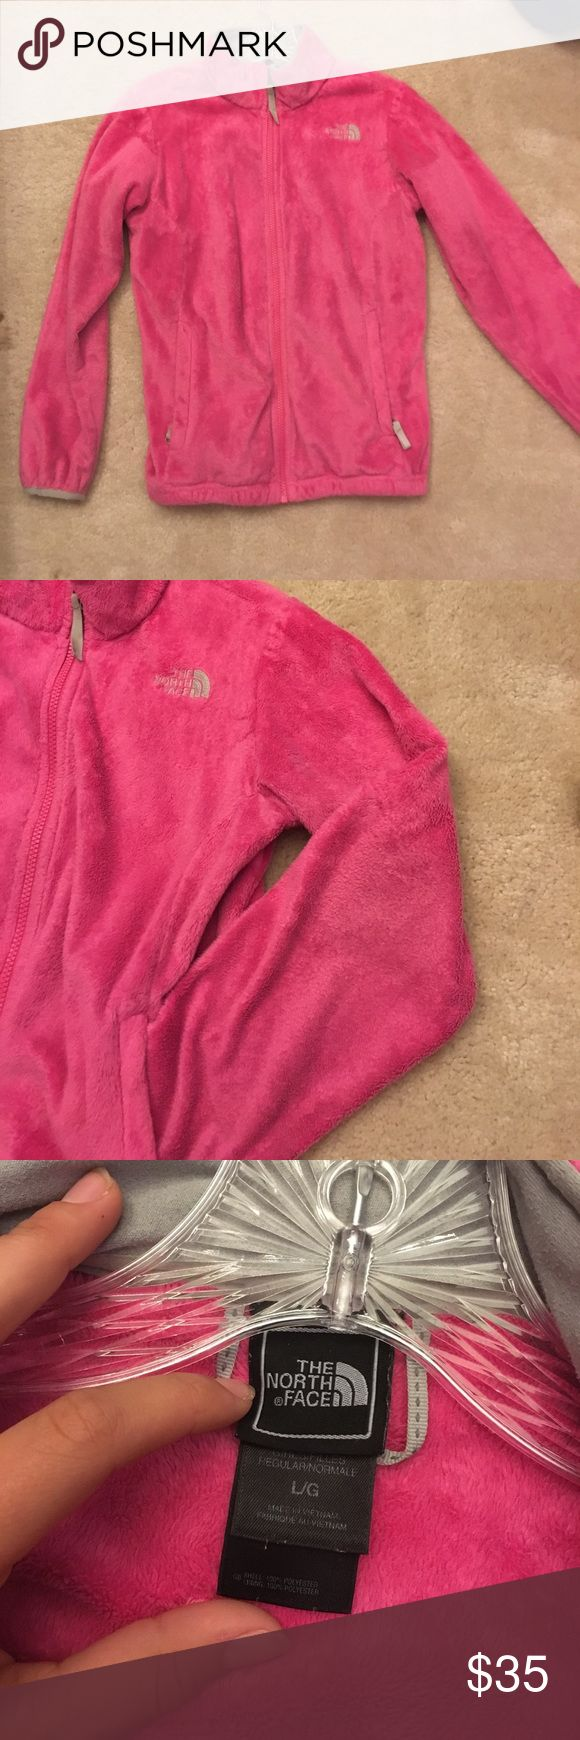 Hot pink North Face Girls large , little wear on elbows and bottom The North Face Jackets & Coats